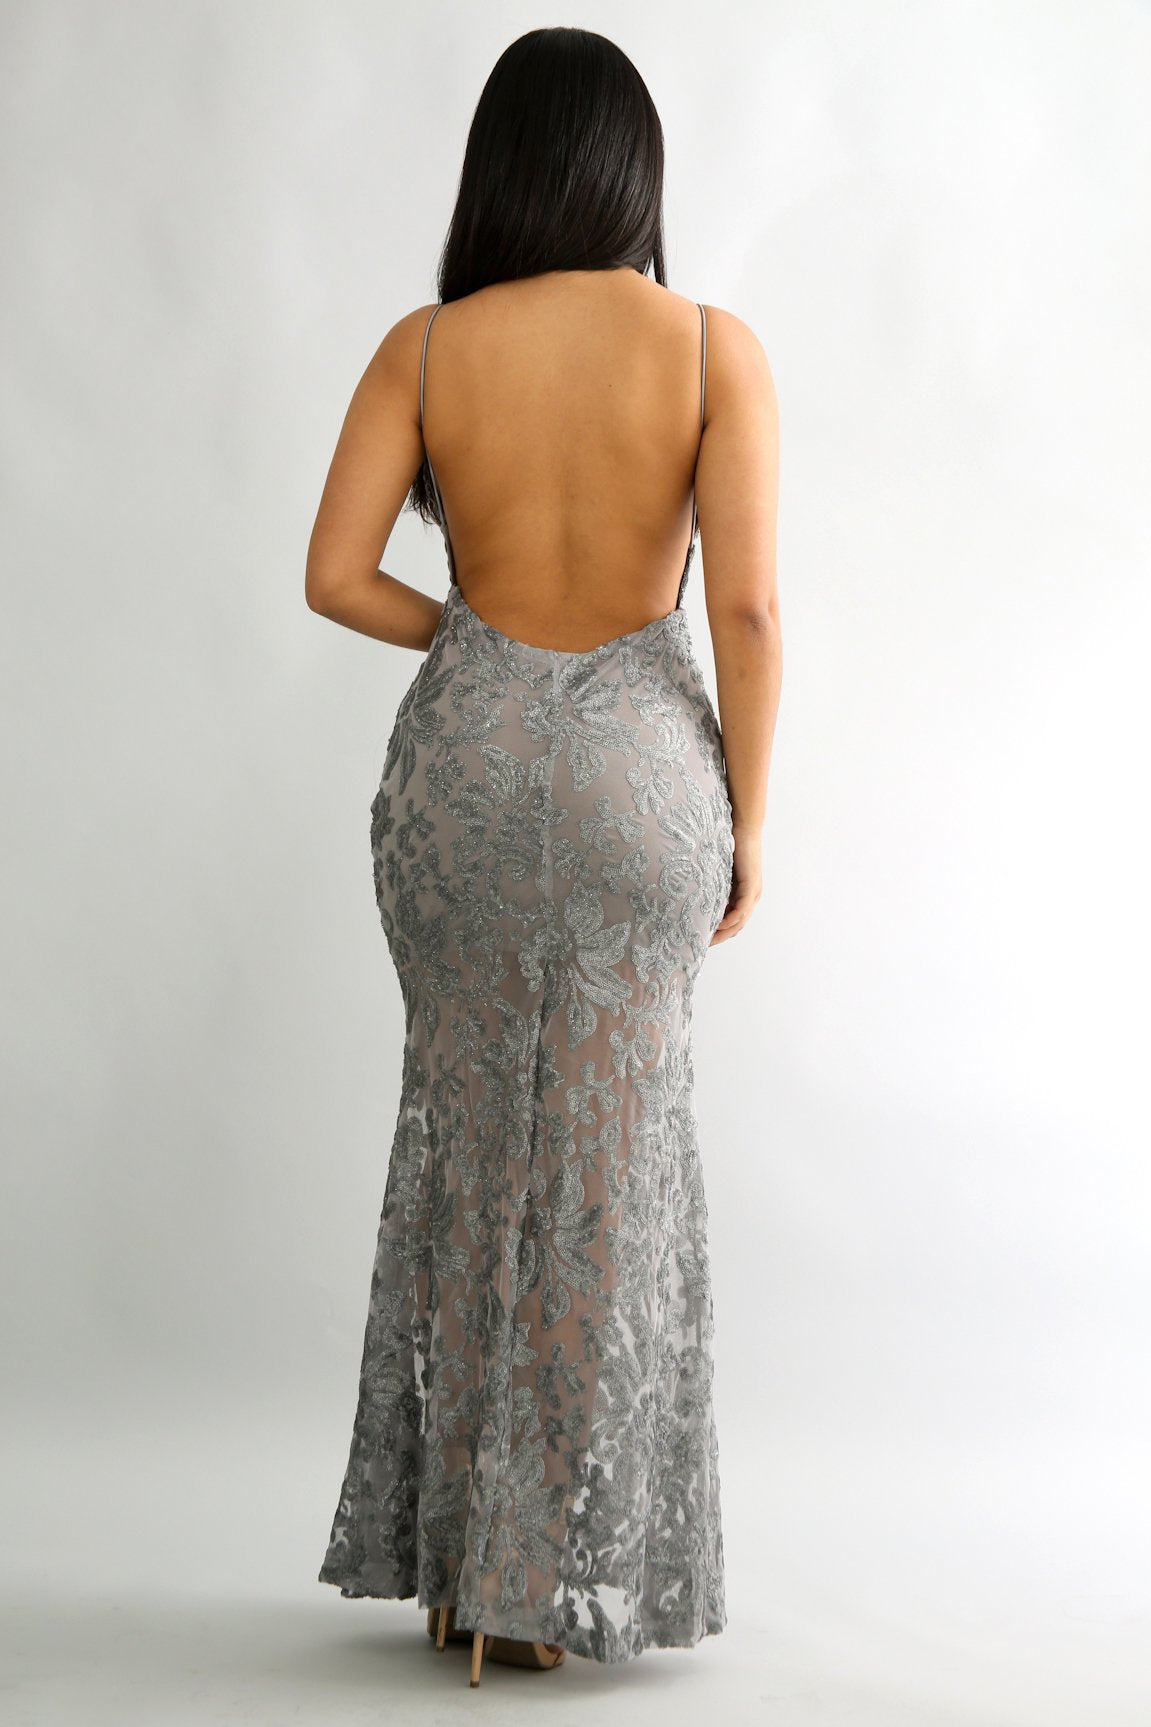 Speckled Glitter Sequin Maxi Dress